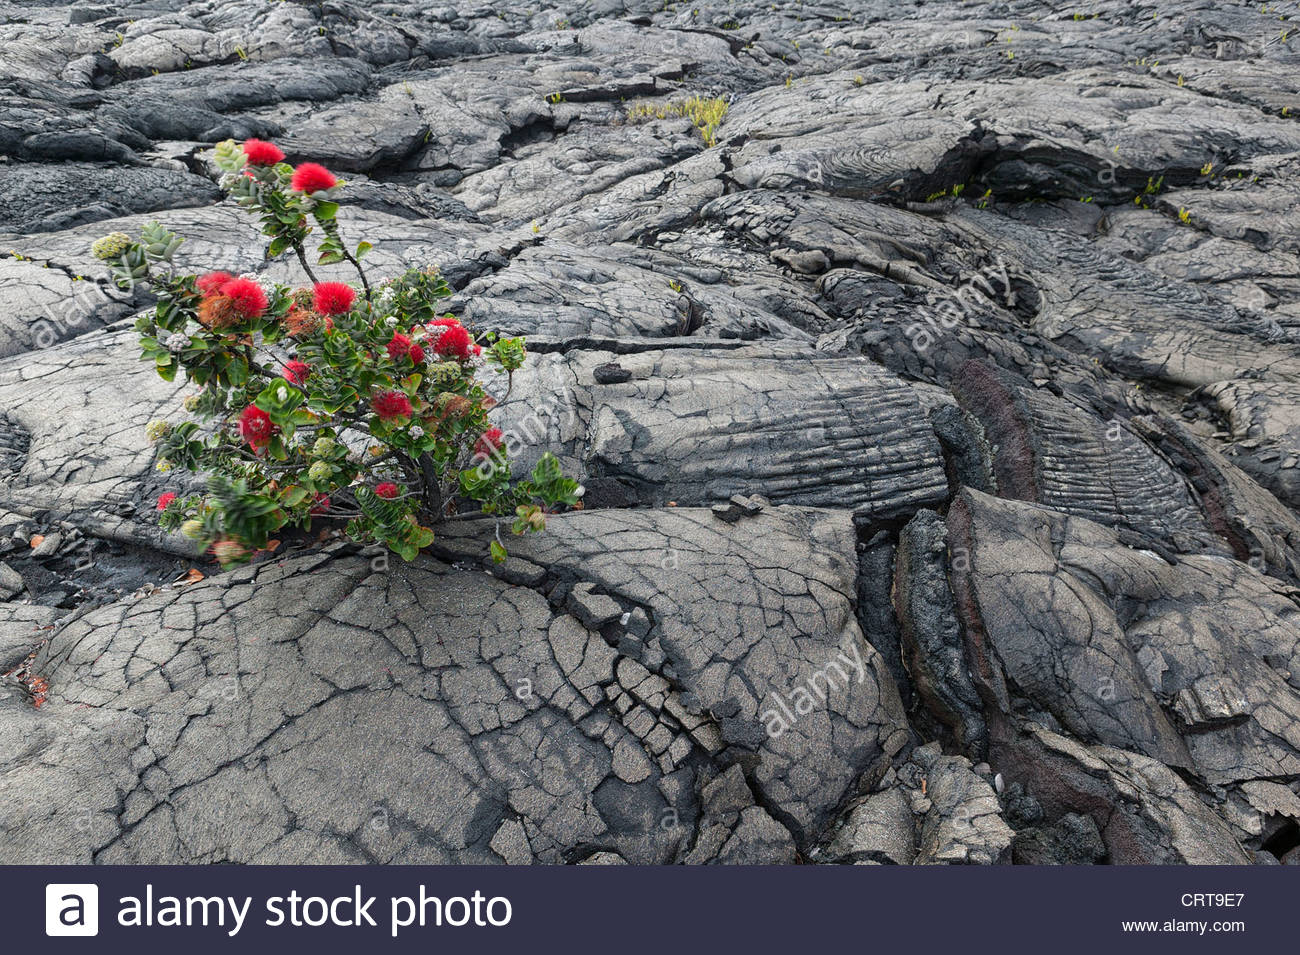 An ohia lehua tree (Metrosideros polymorpha) provides rare color on a lava field in Volcanoes National Park, Hawaii. Stock Photo